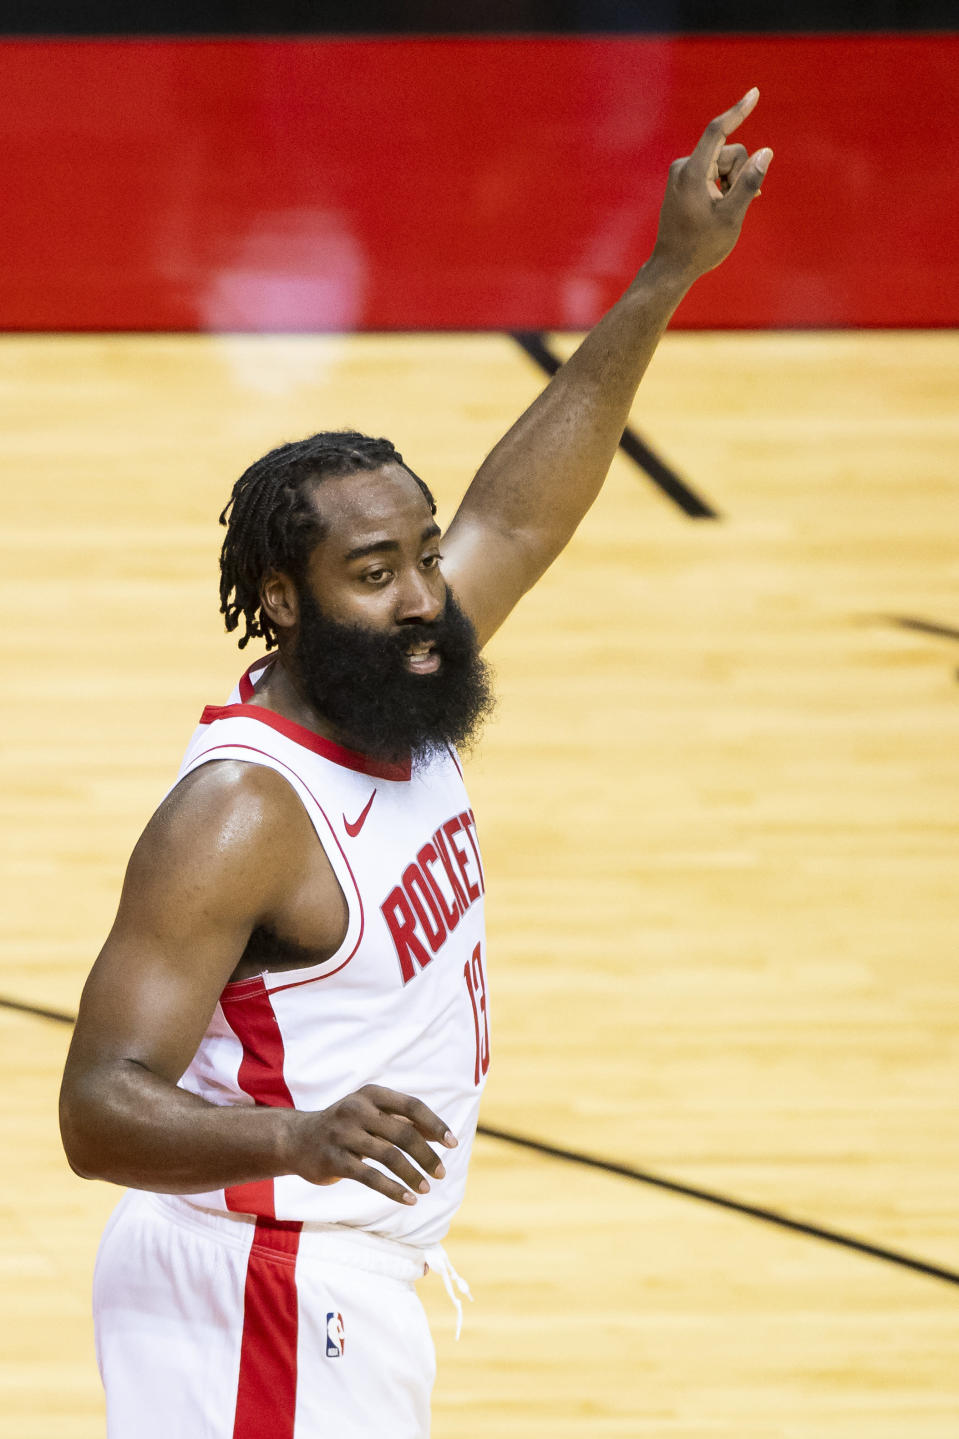 Houston Rockets guard James Harden (13) yells directions to his team during the third quarter of a preseason NBA basketball game against the San Antonio Spurs, Thursday, Dec. 17, 2020, in Houston. (Mark Mulligan/Houston Chronicle via AP)